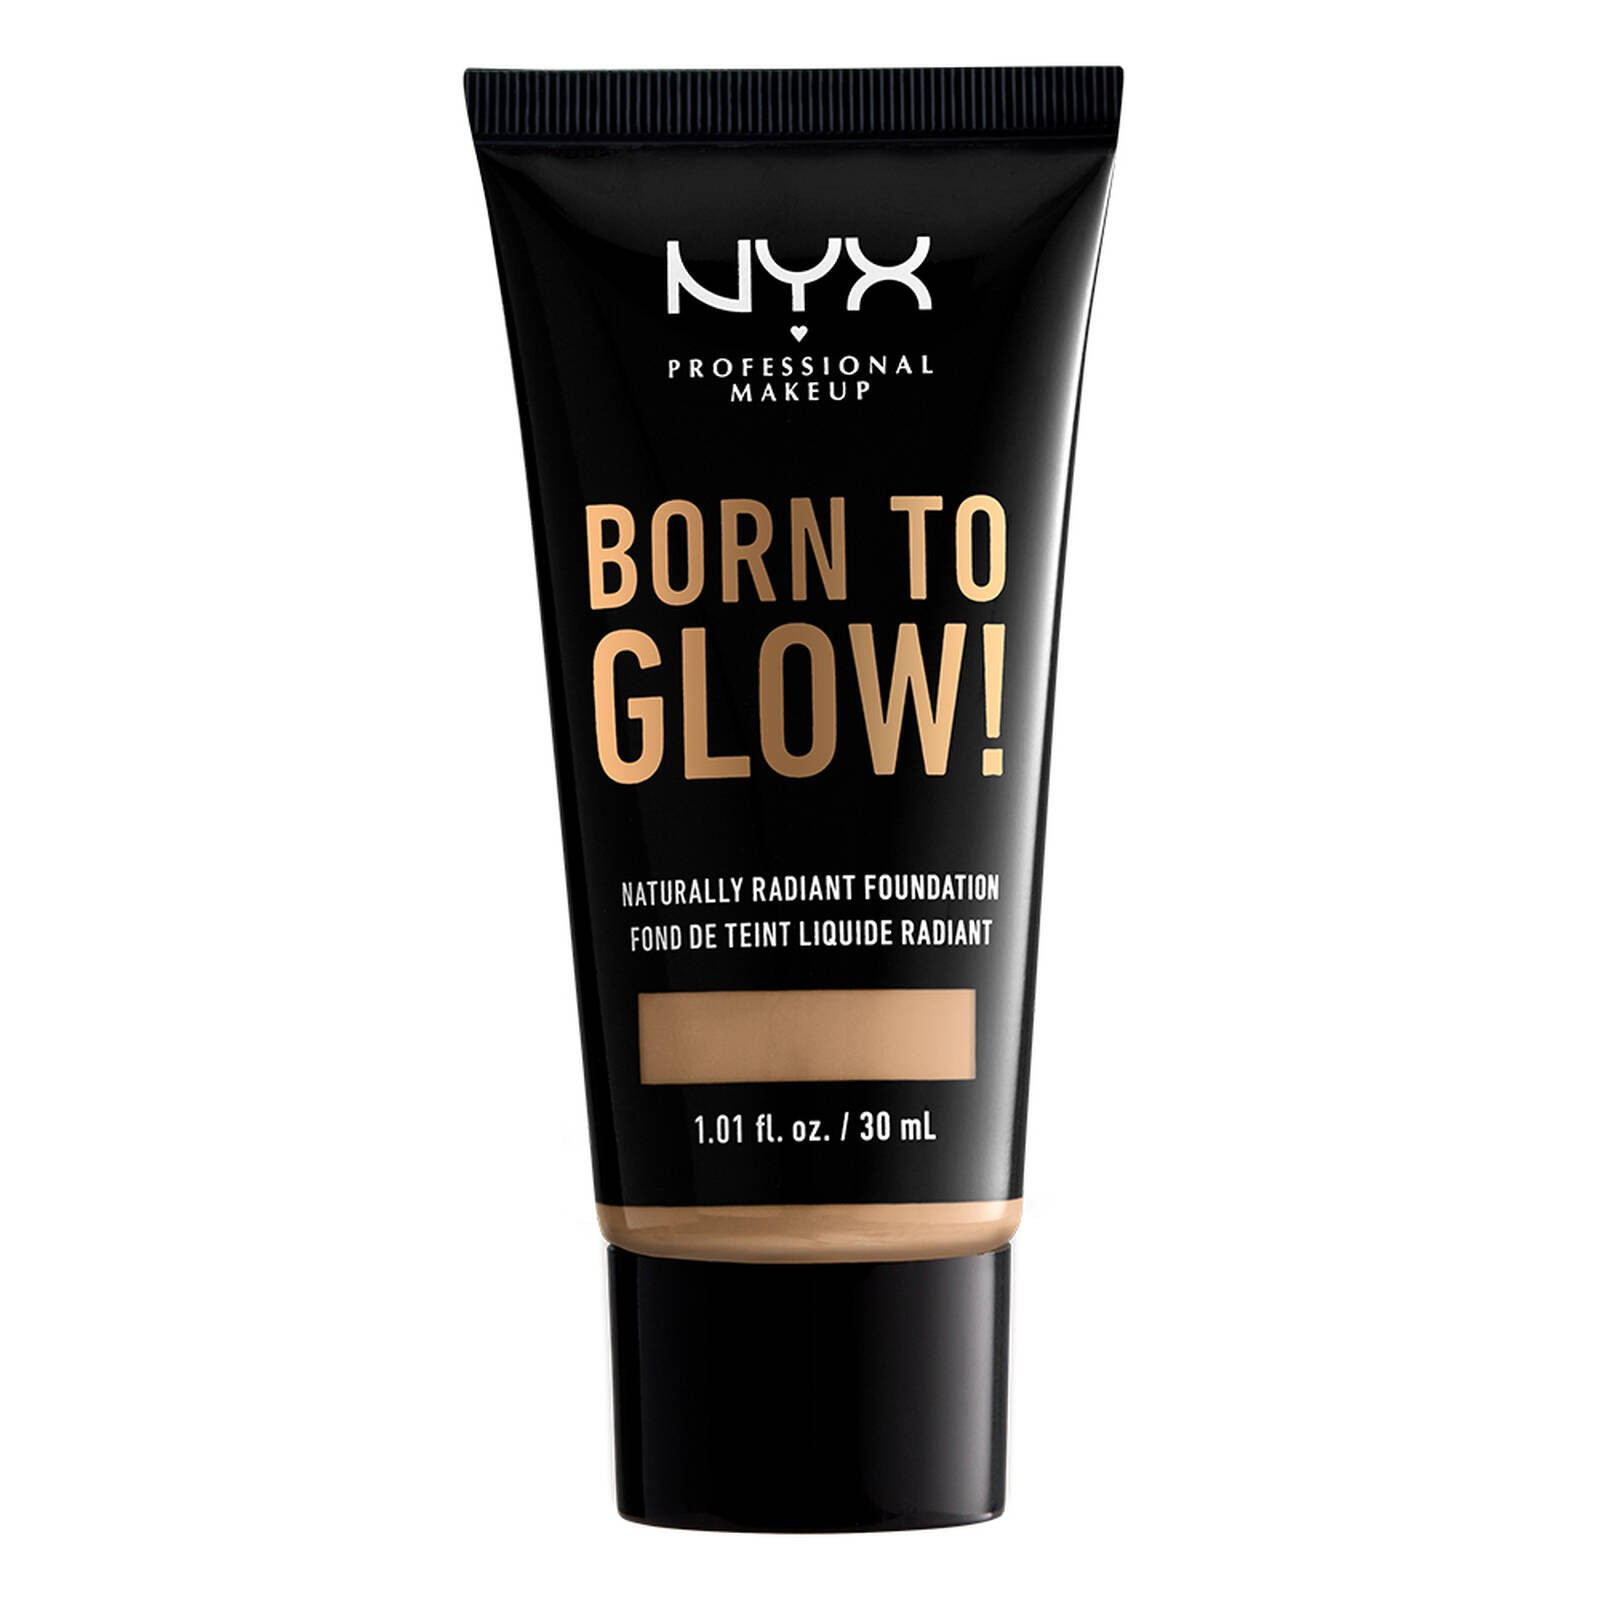 Fond de Teint - Born To Glow! Naturally Radiant Foundation